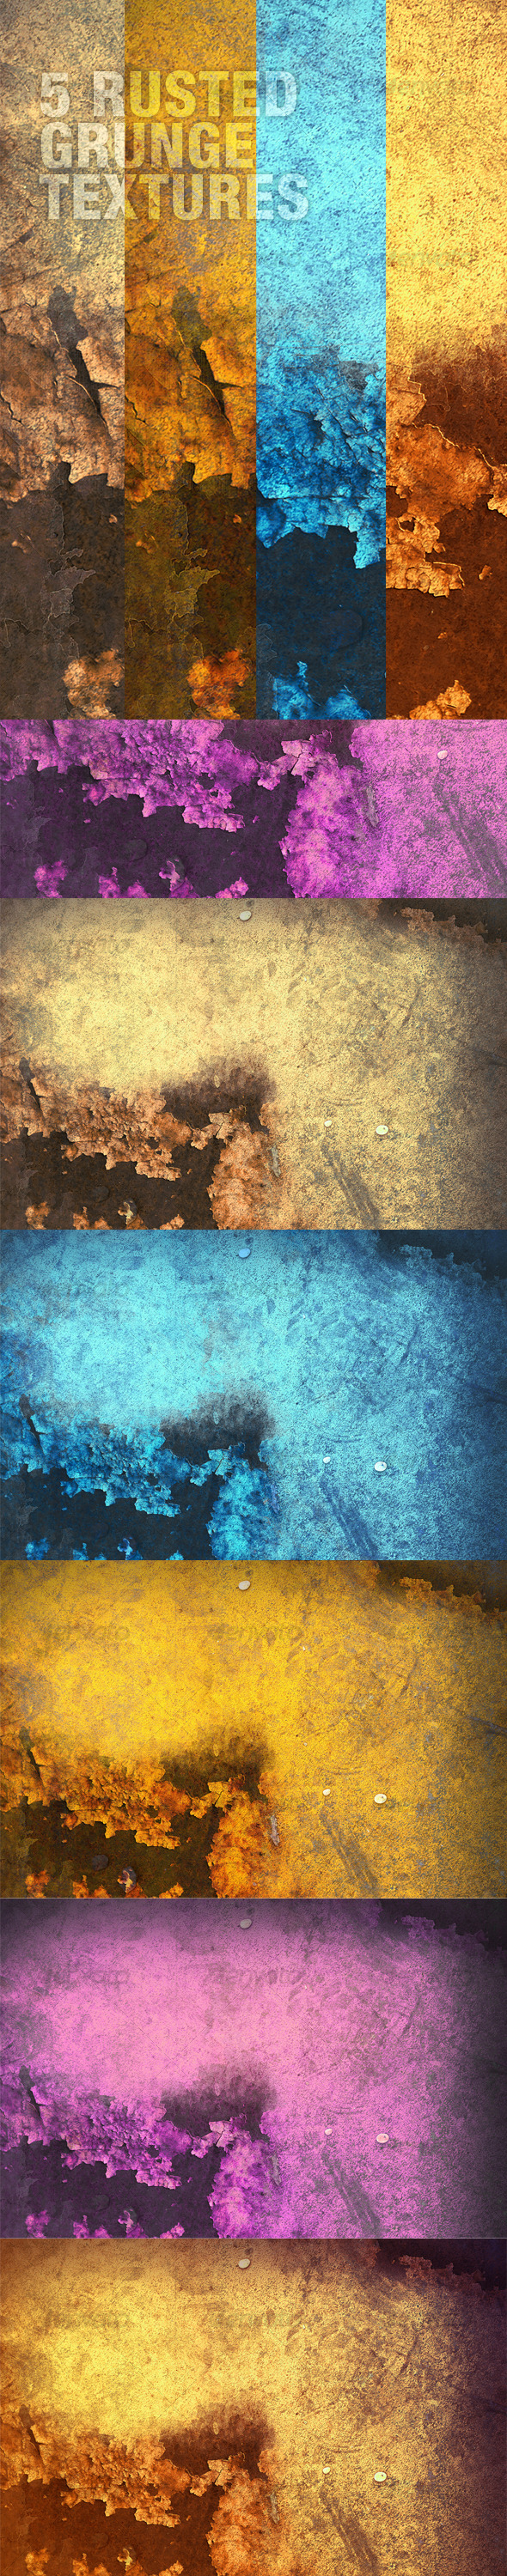 A Rusted Grunge Textures Pack in 5 Colours - Industrial / Grunge Textures